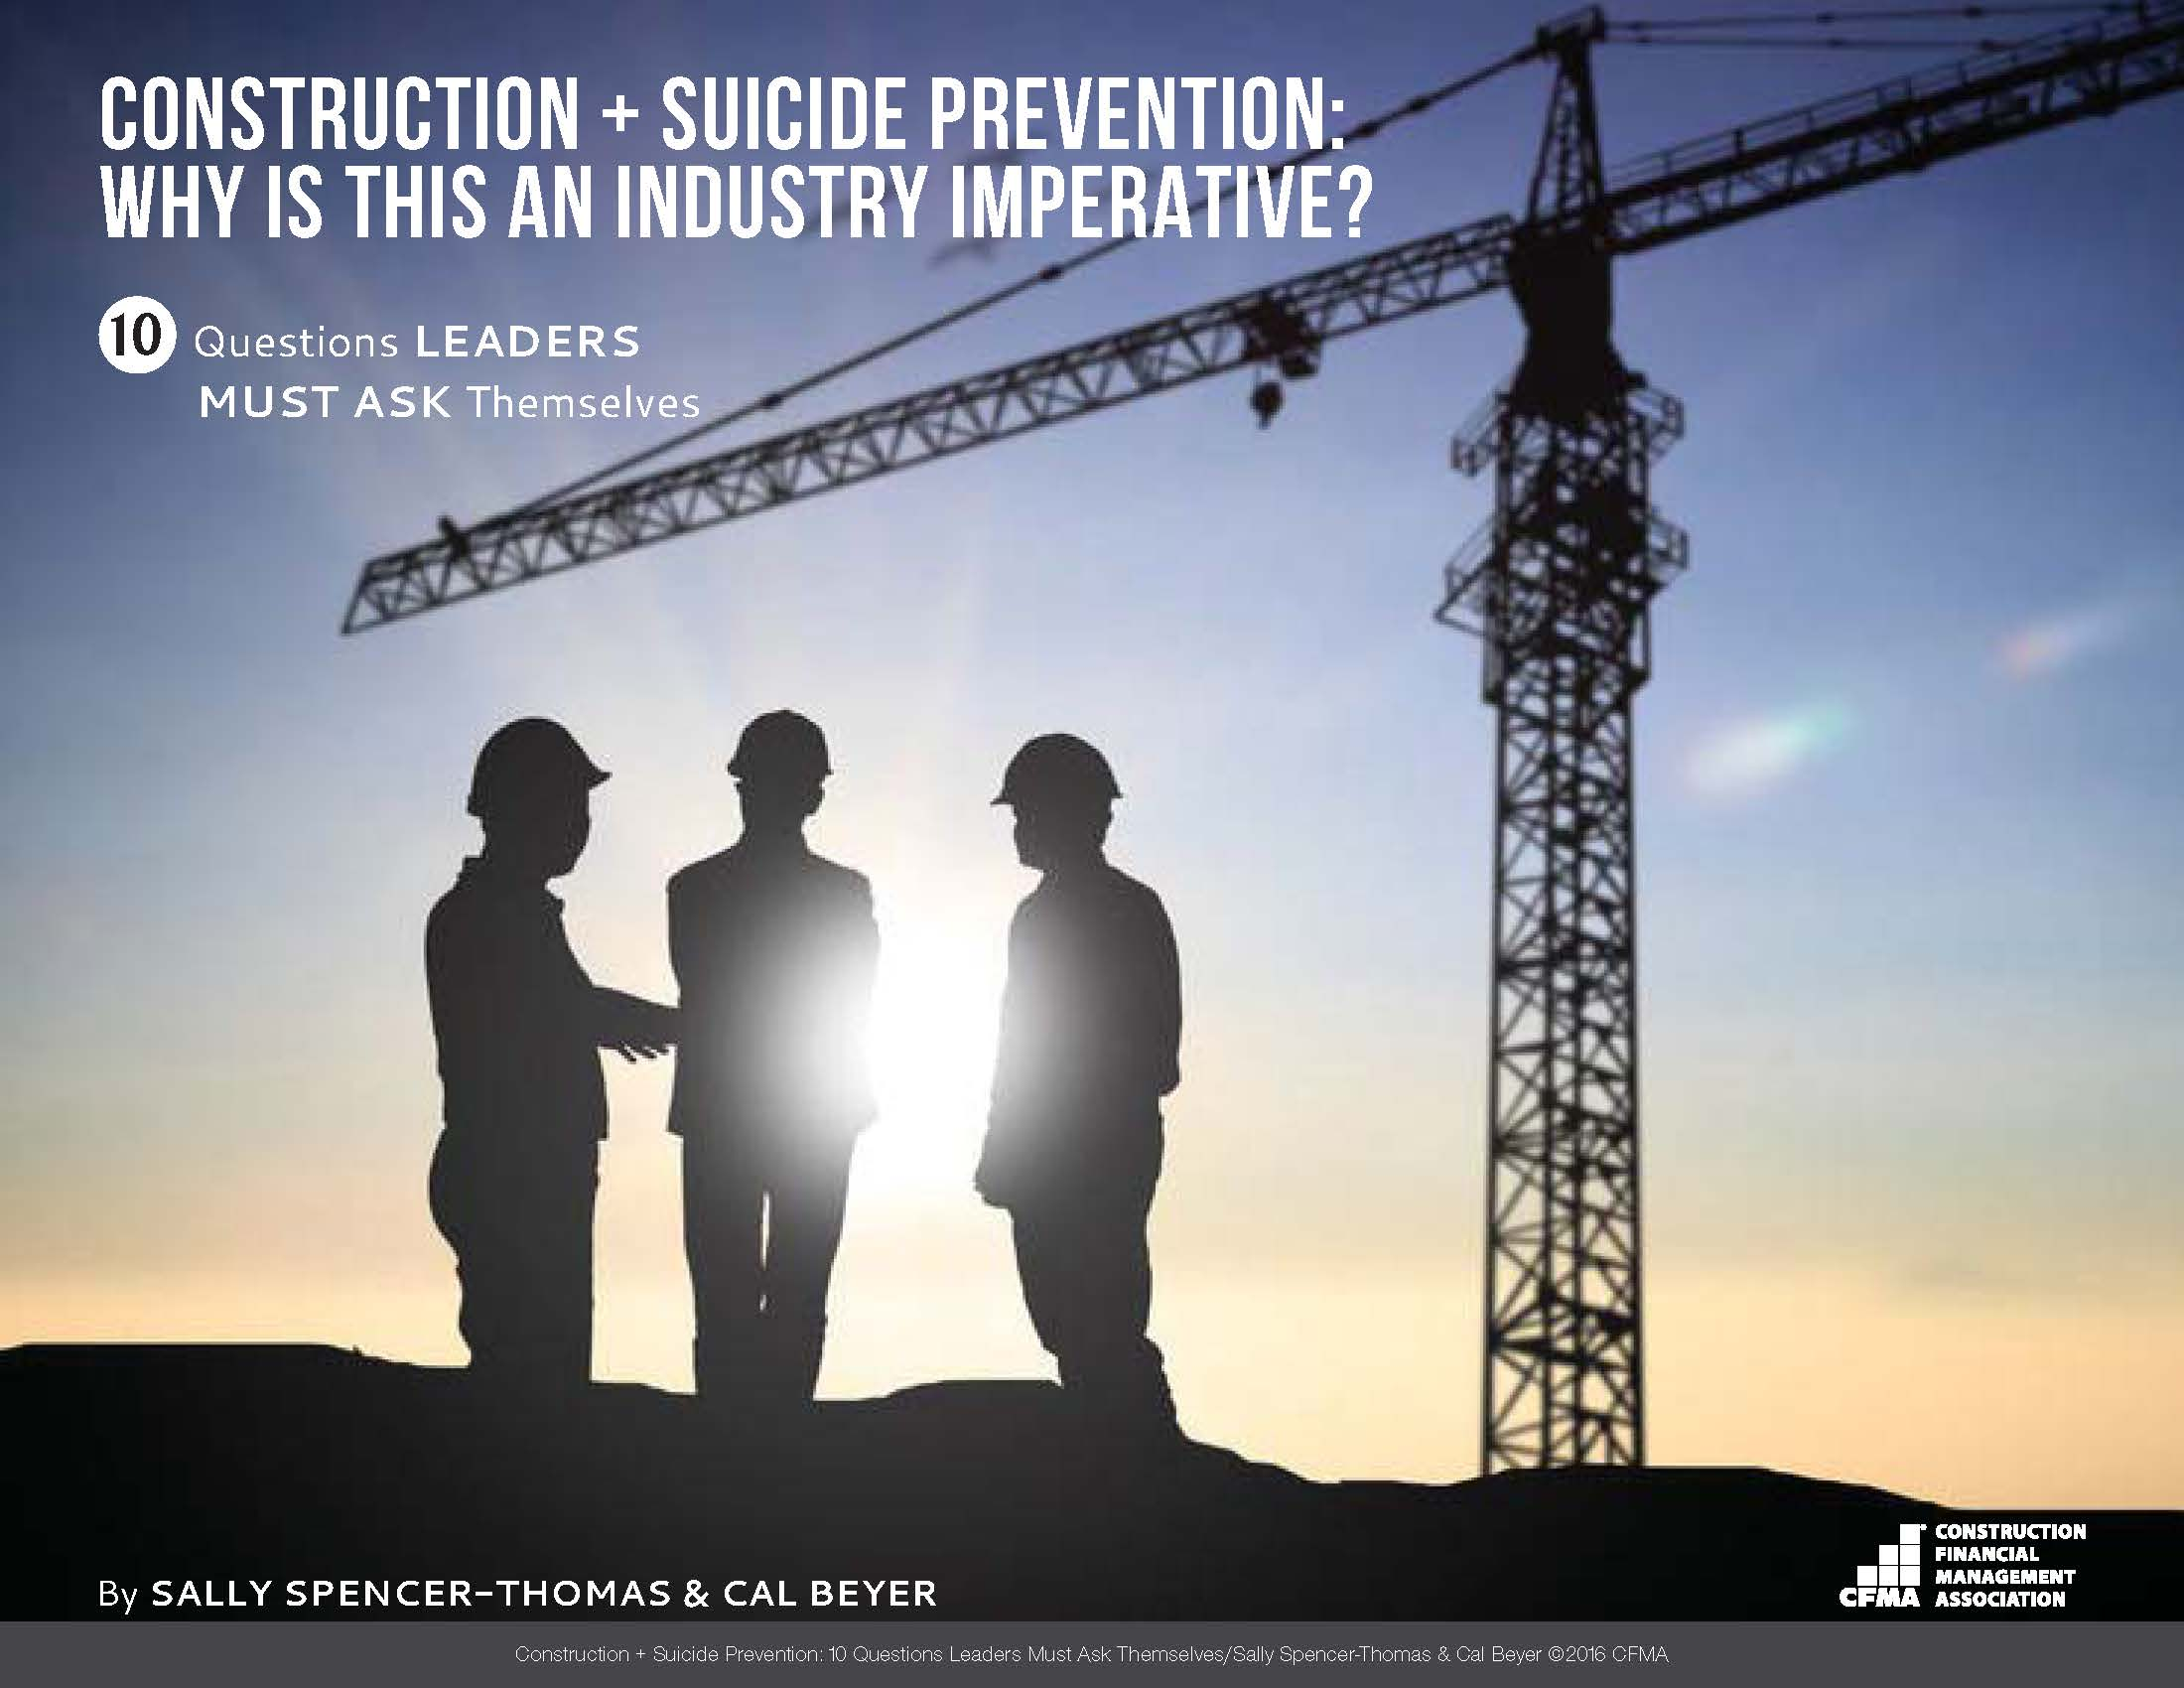 Construction + Suicide Prevention: Why Is this an Industry Imperative?